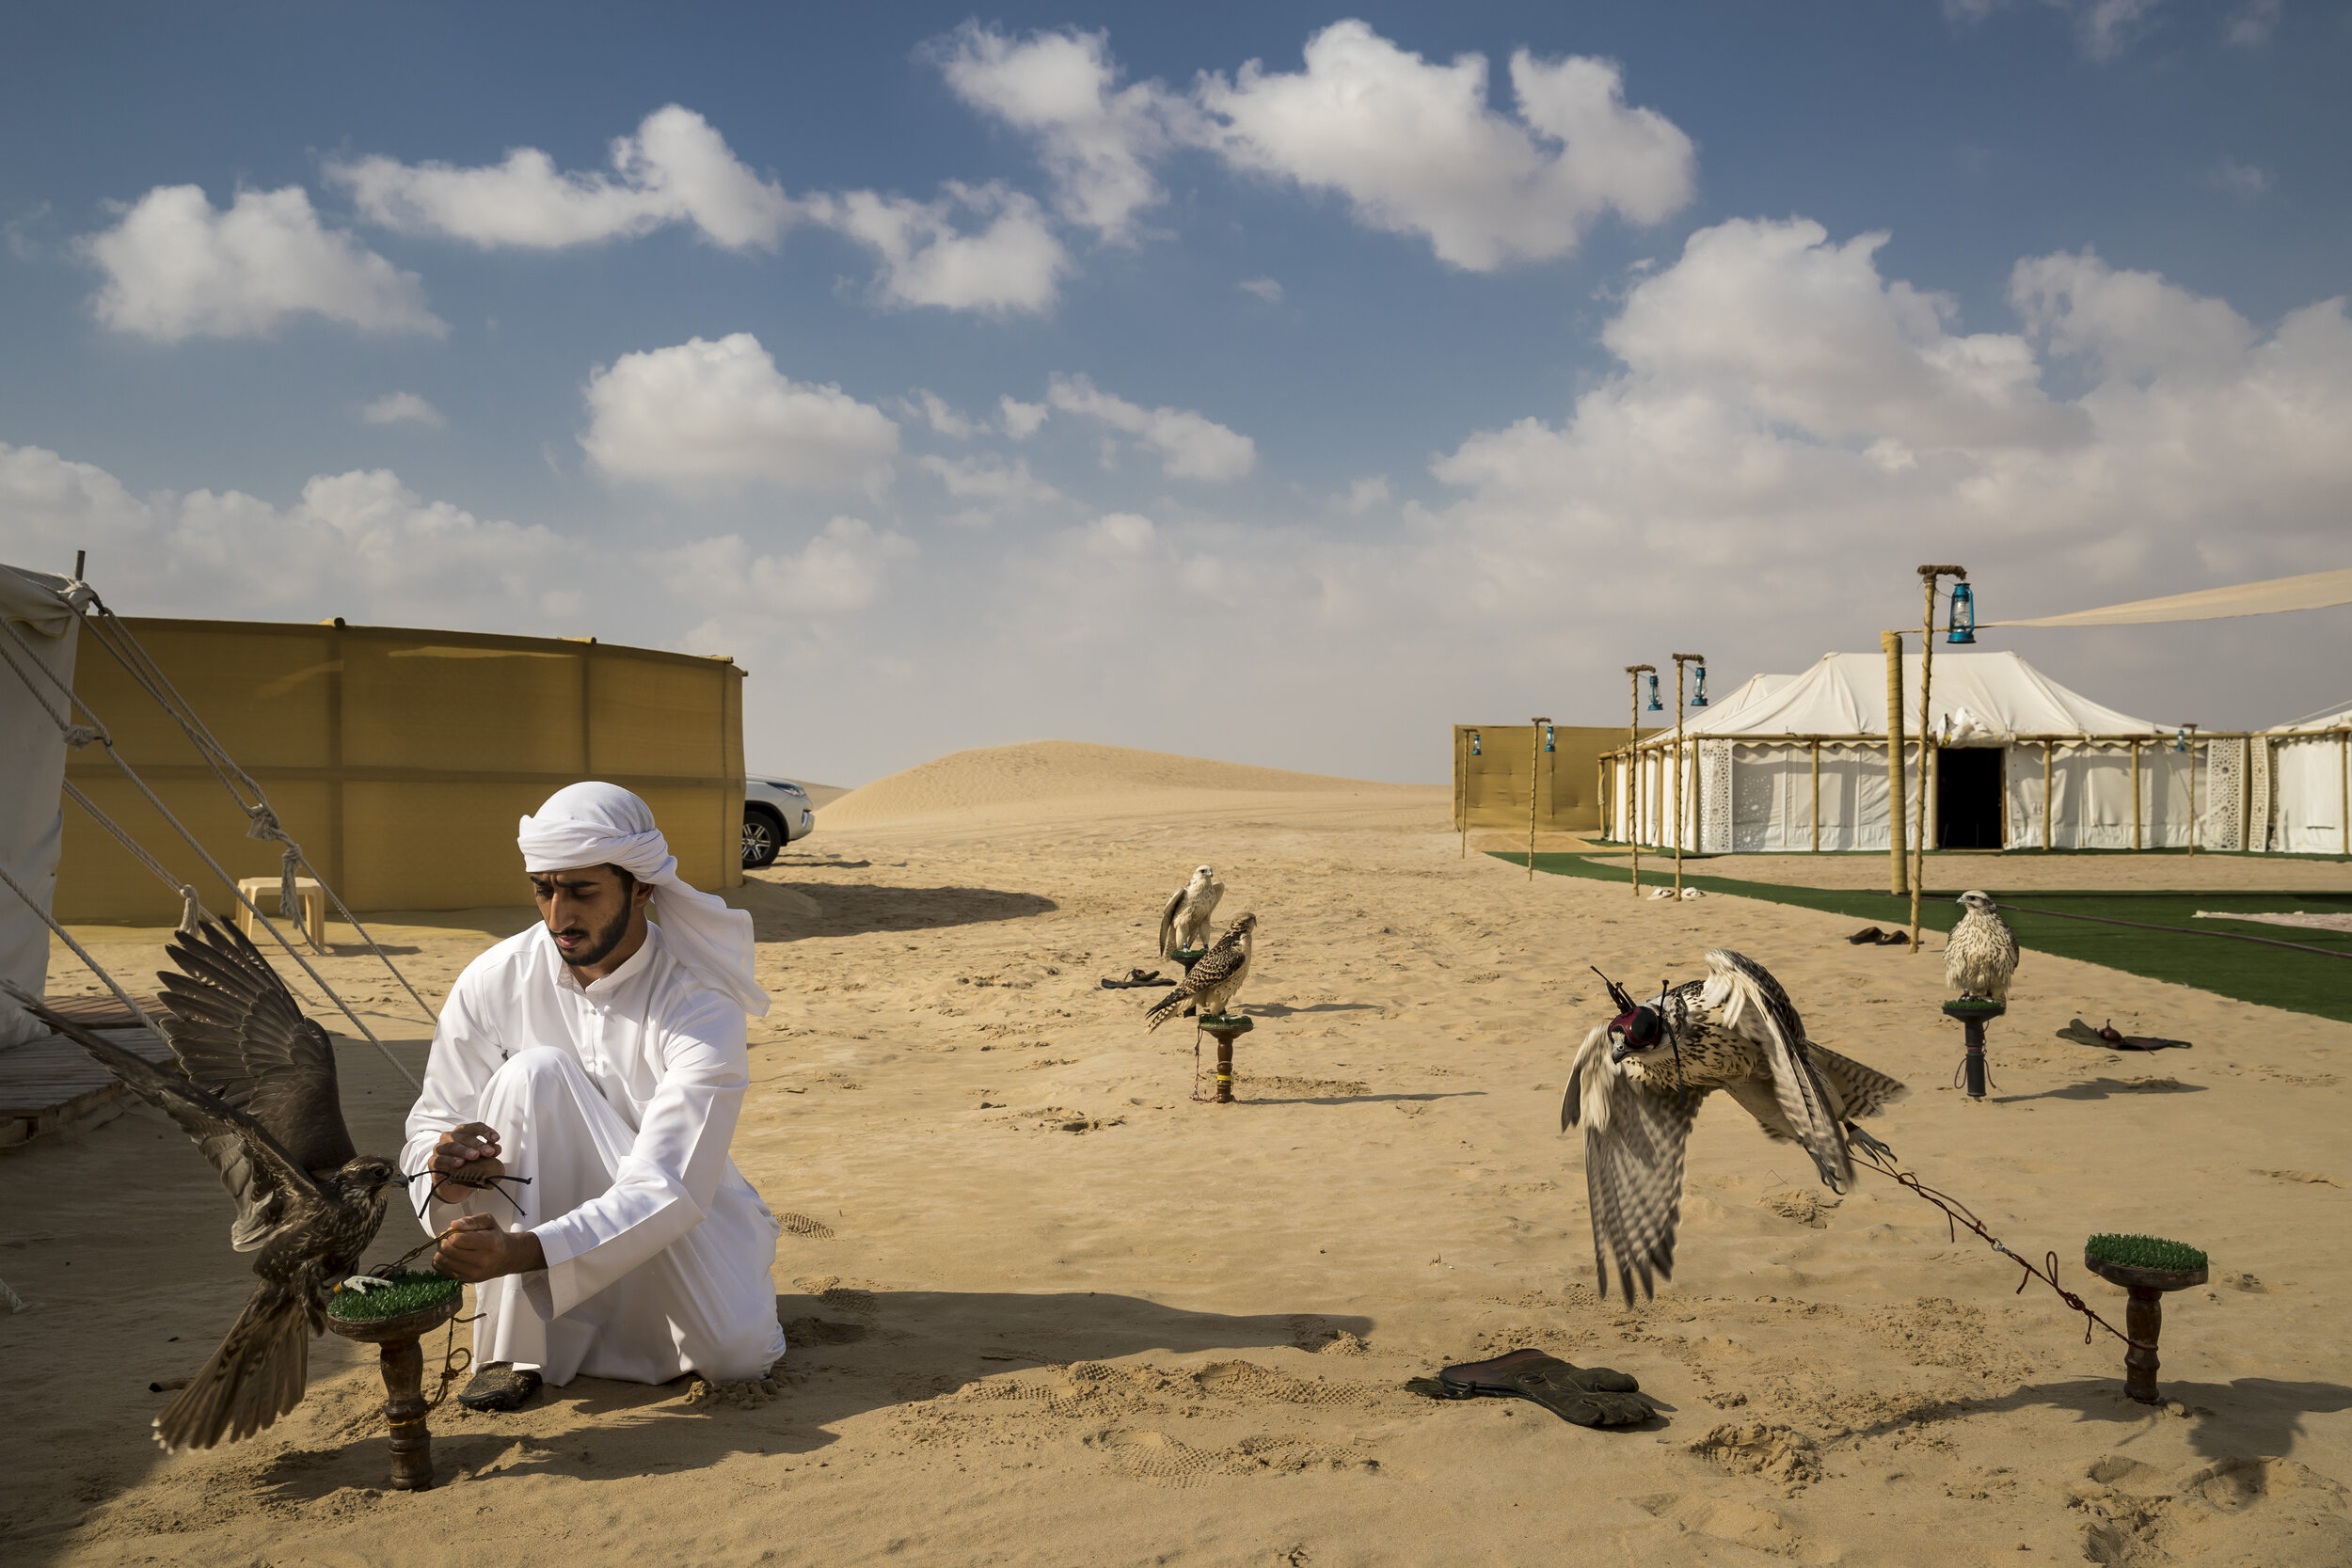 099_Brent Stirton_Getty Images_for National Geographic.jpg